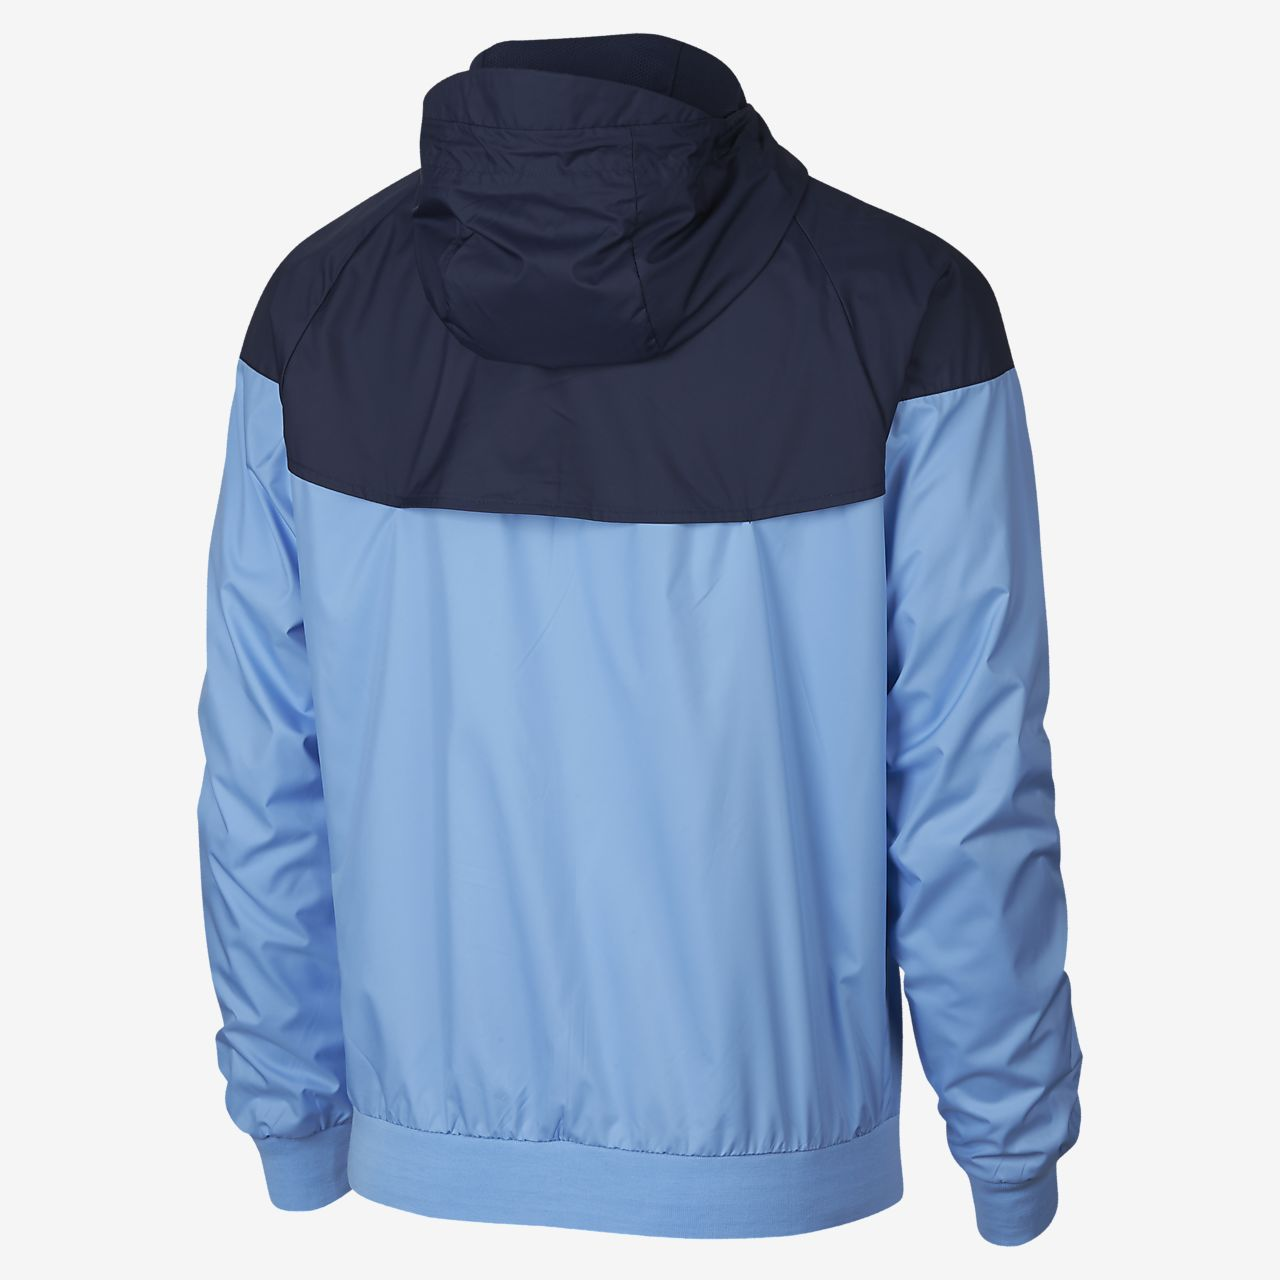 27ce03ee54 Manchester City FC Windrunner Men s Jacket. Nike.com CH